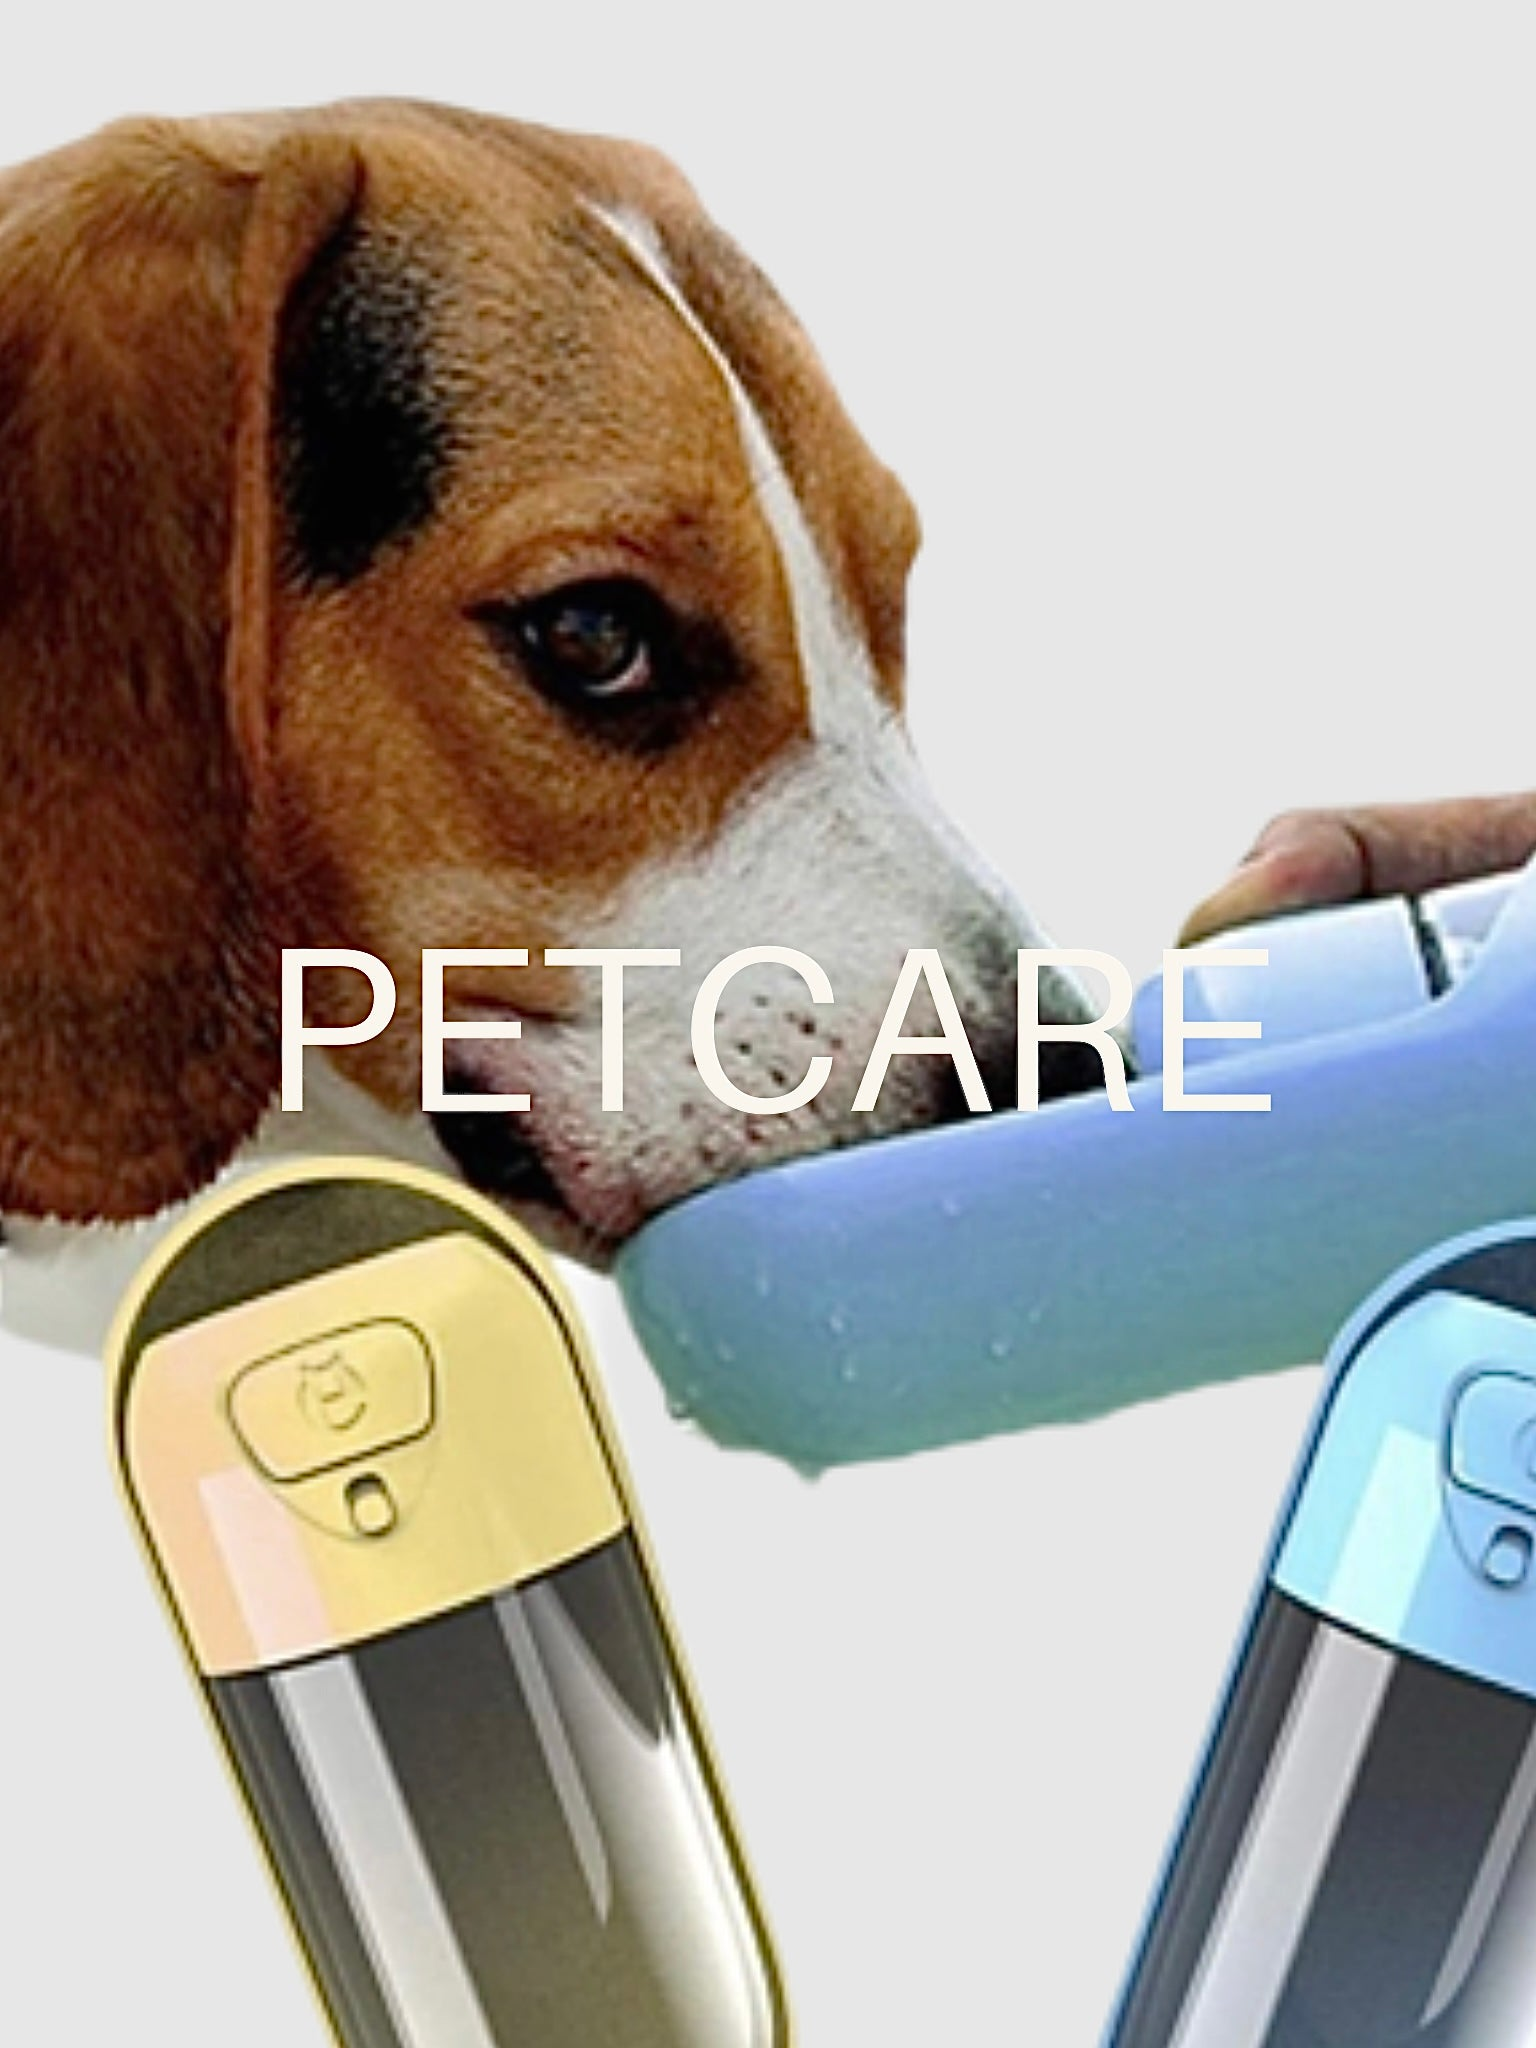 miTeigi | Pet Care and Accessories | Japanese Apparel and Home Decor Retail Shopping